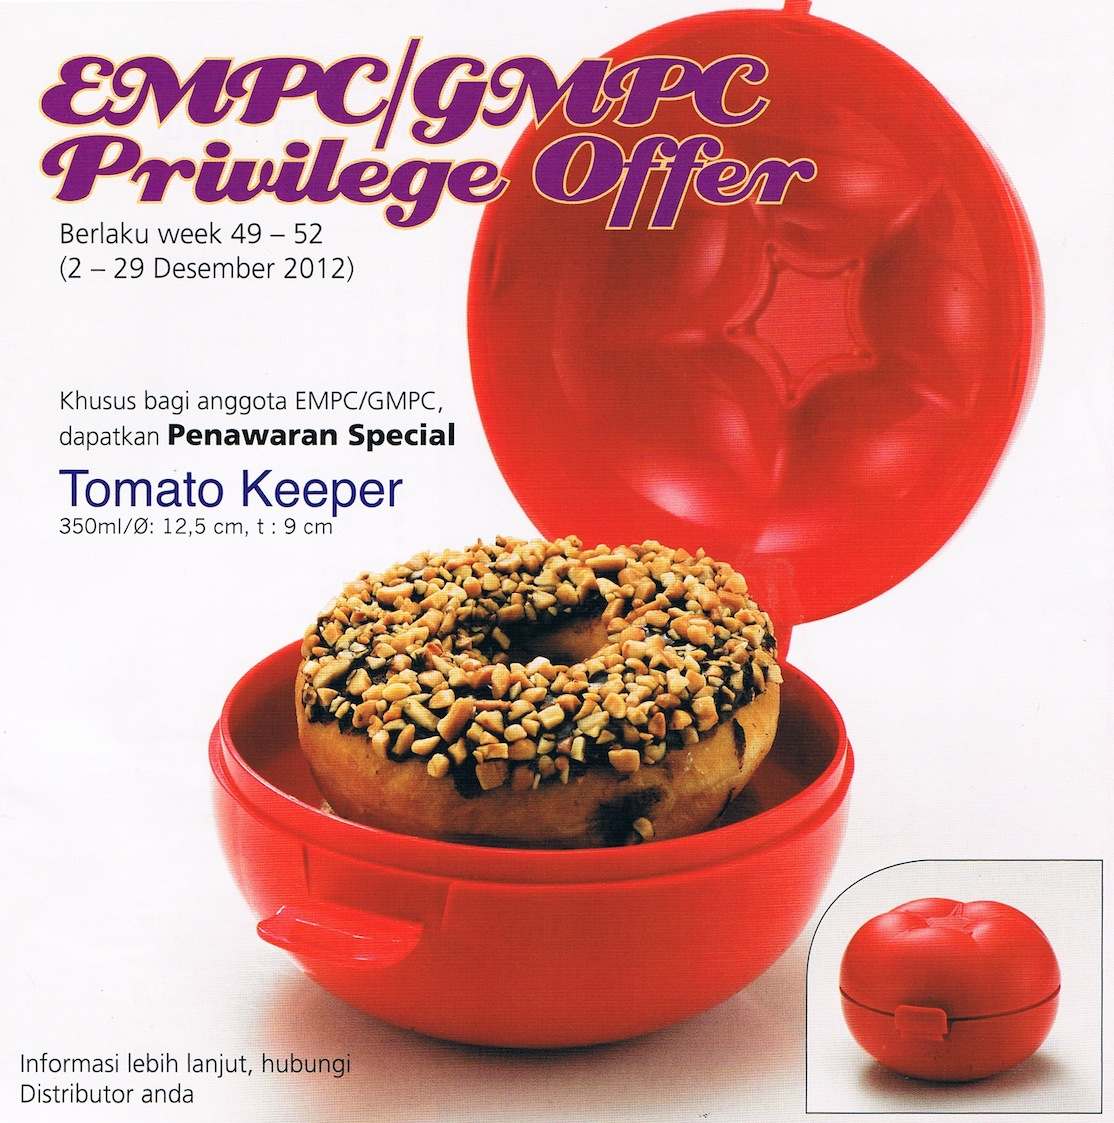 Promo Tupperware Katalog Promo Tupperware September 2012 Blogsfiw Activity Tupperware Desember 2012 1114x1123